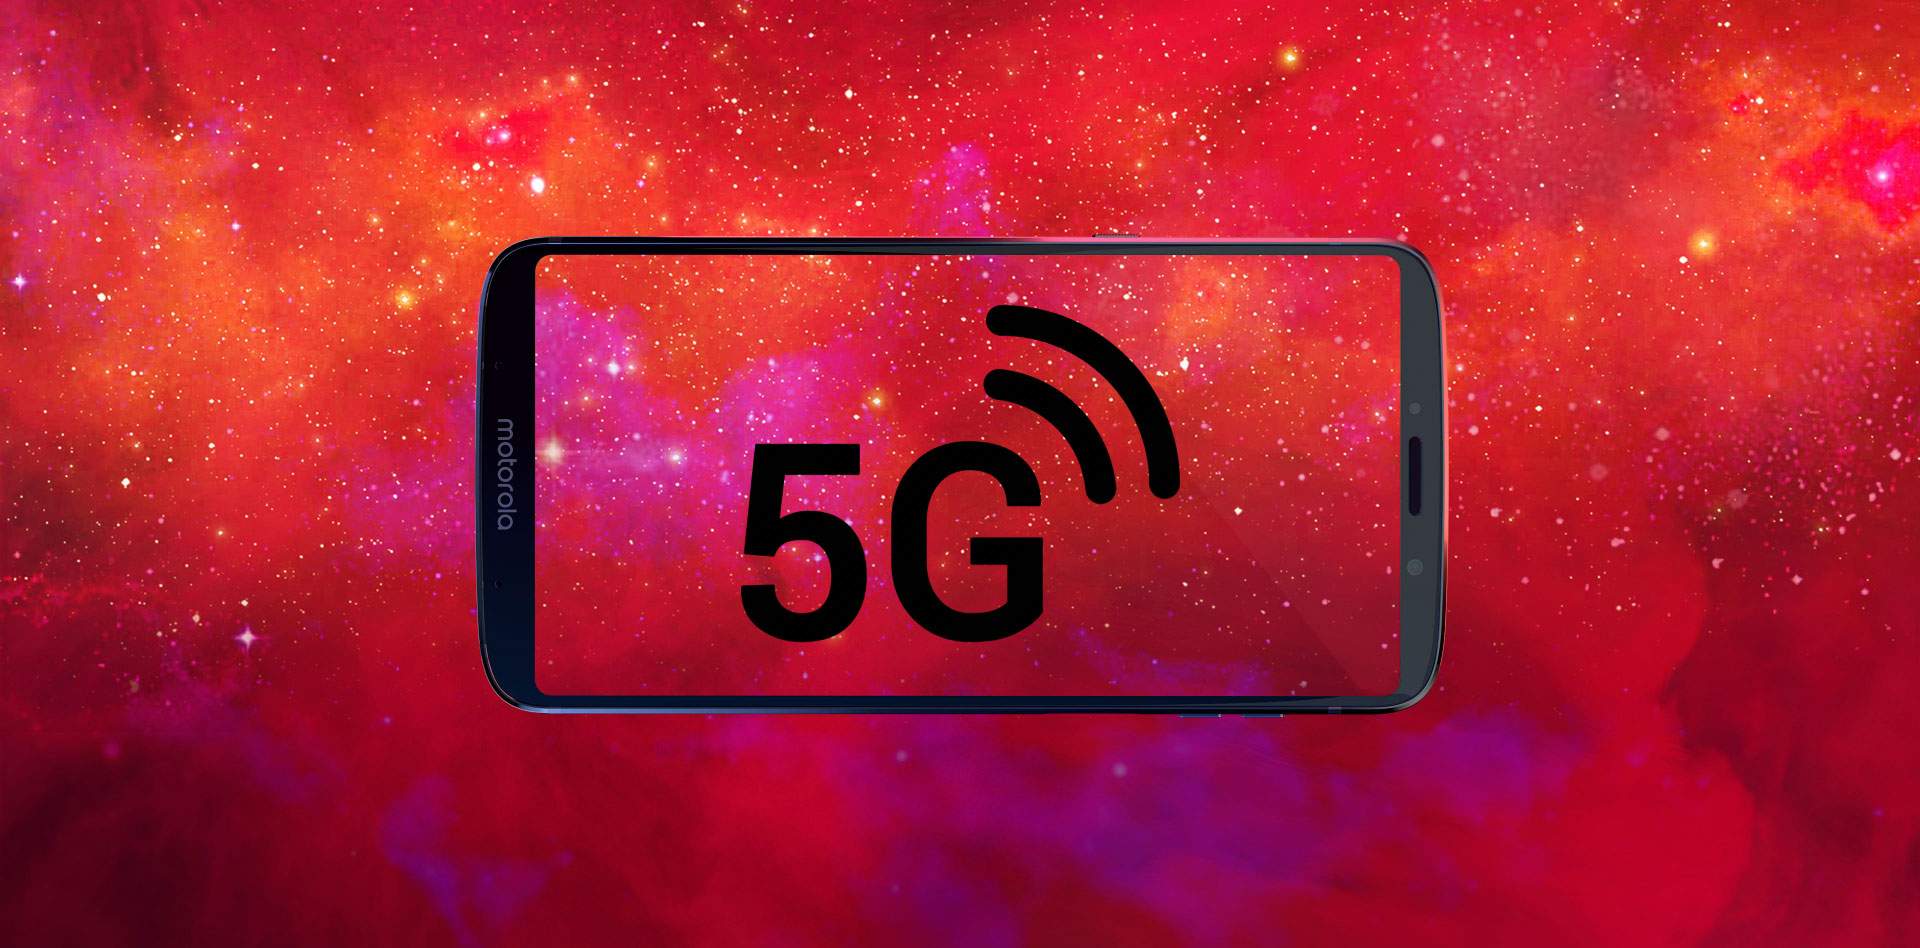 5G Networks Are Coming: Release Date, Carriers, and Why It